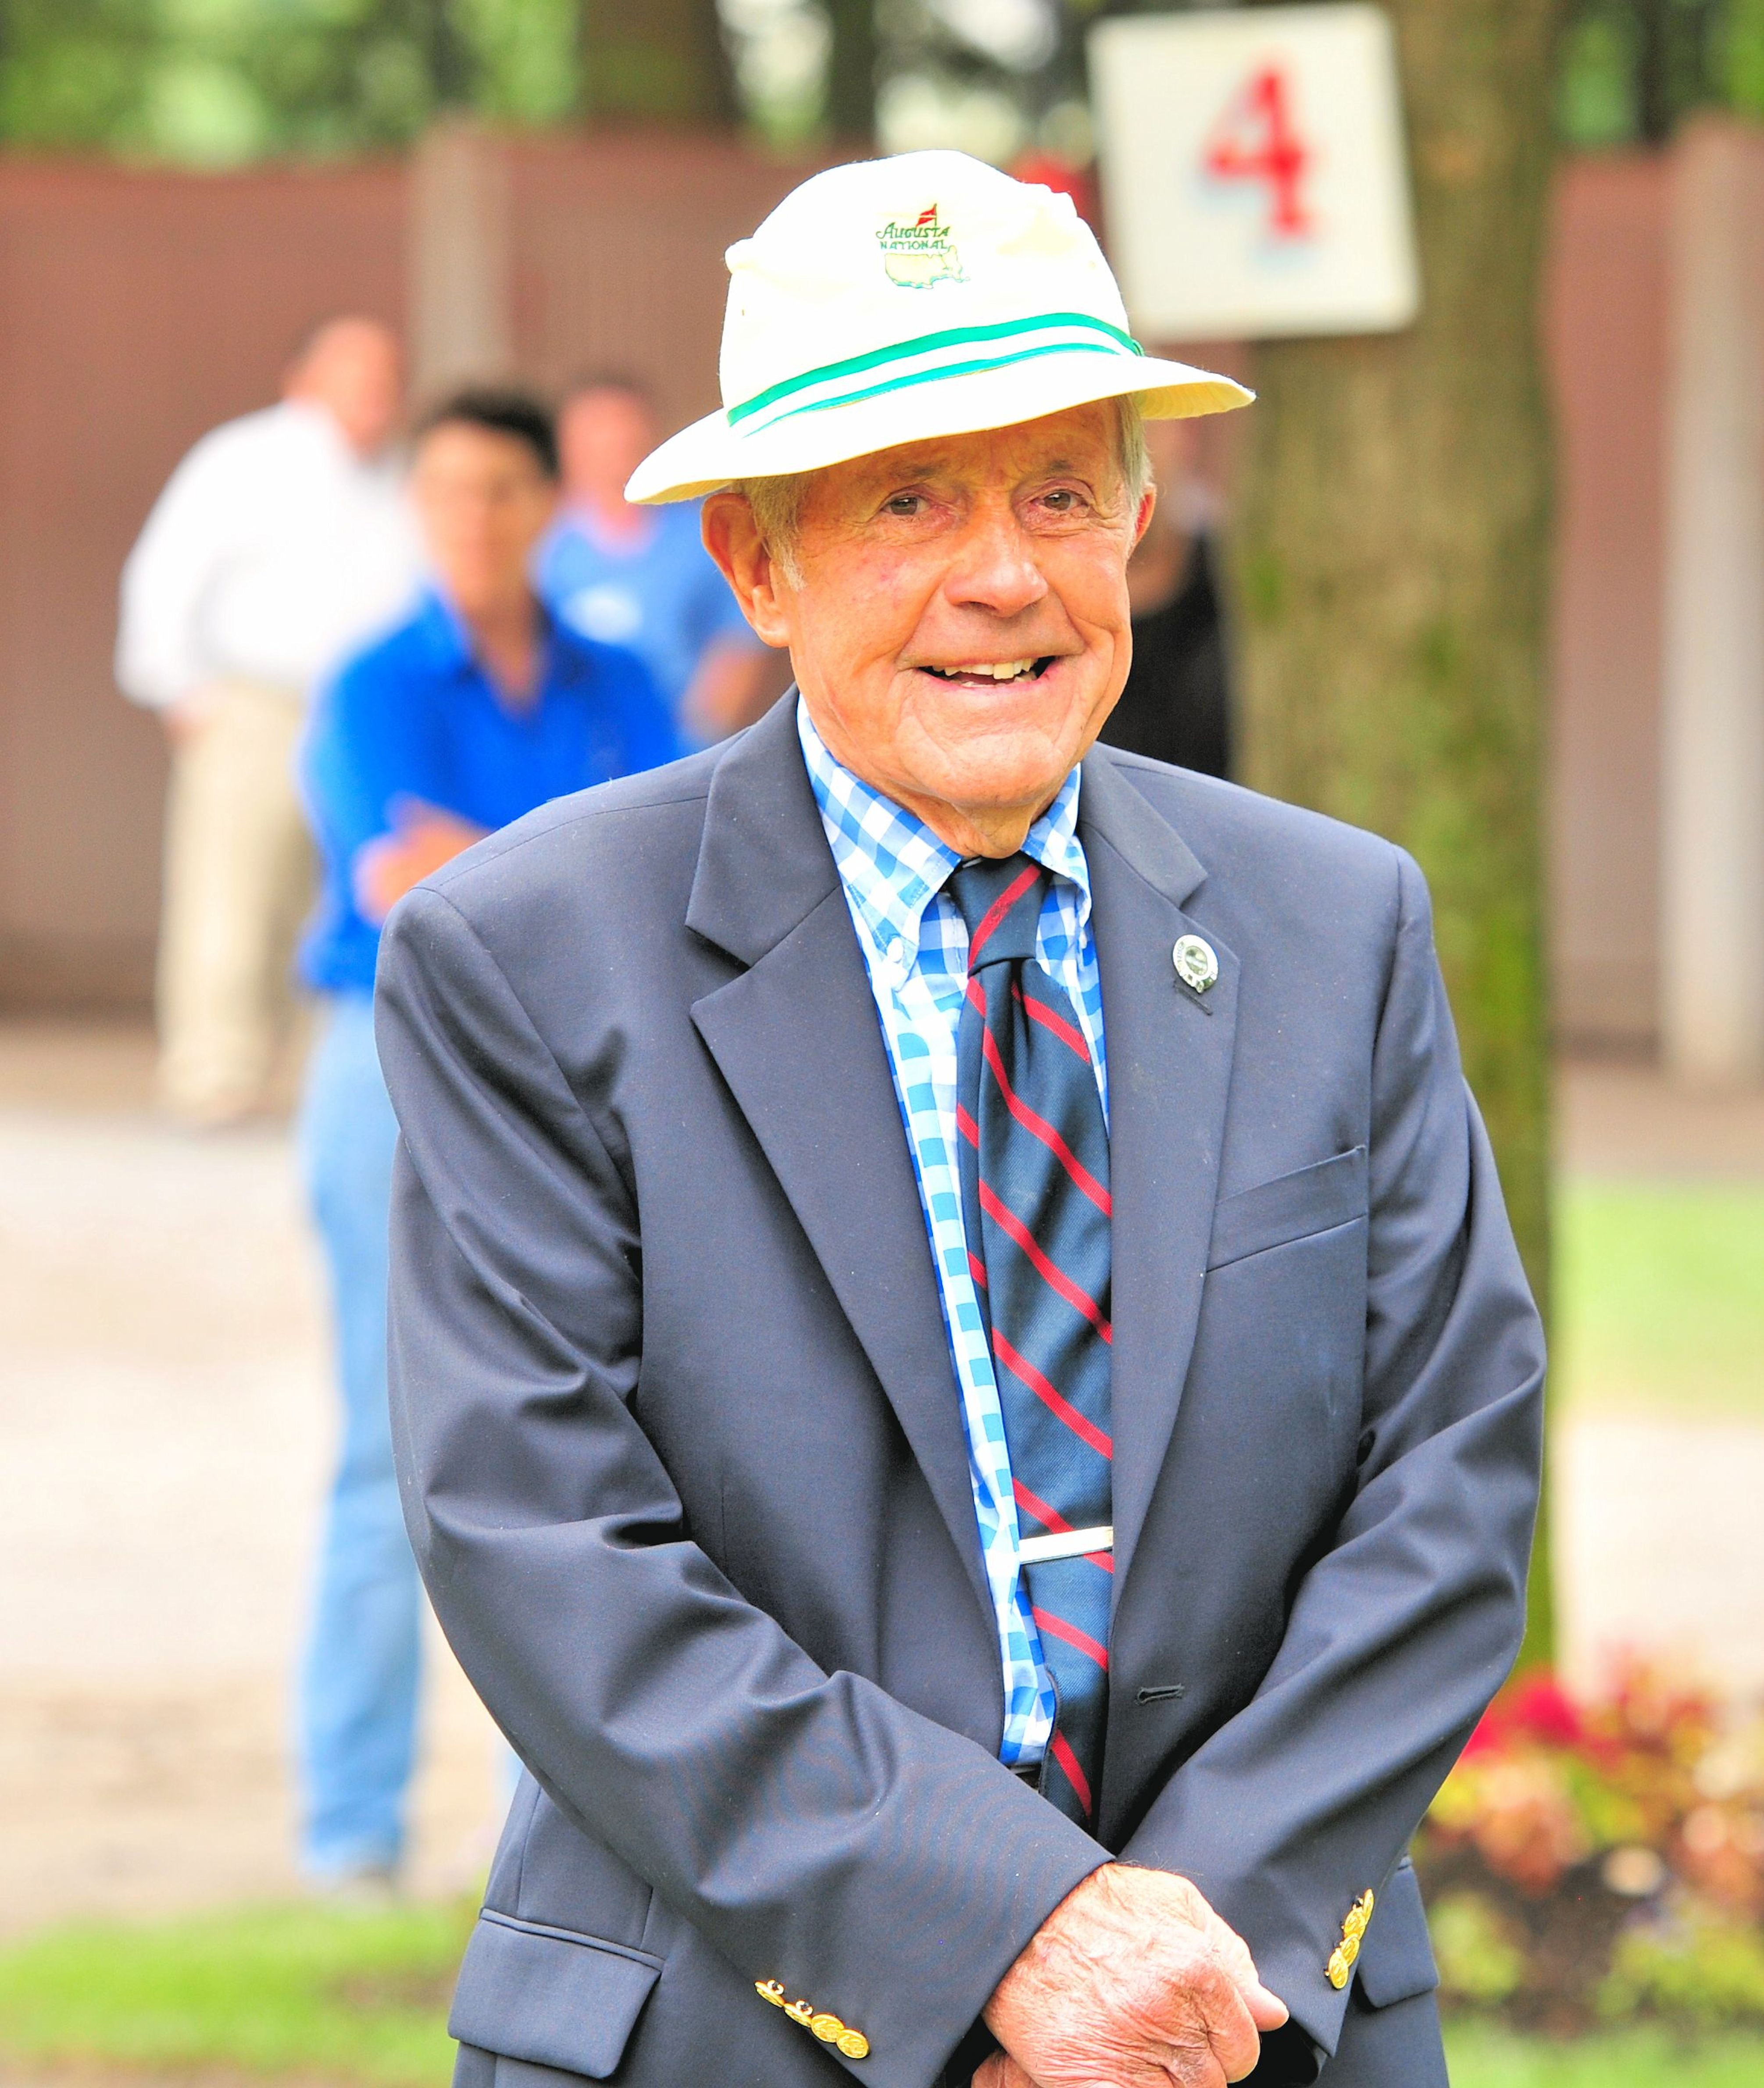 Cot Cambell in the paddock at Saratoga Race Course, September 2013 (Brien Bouyea)